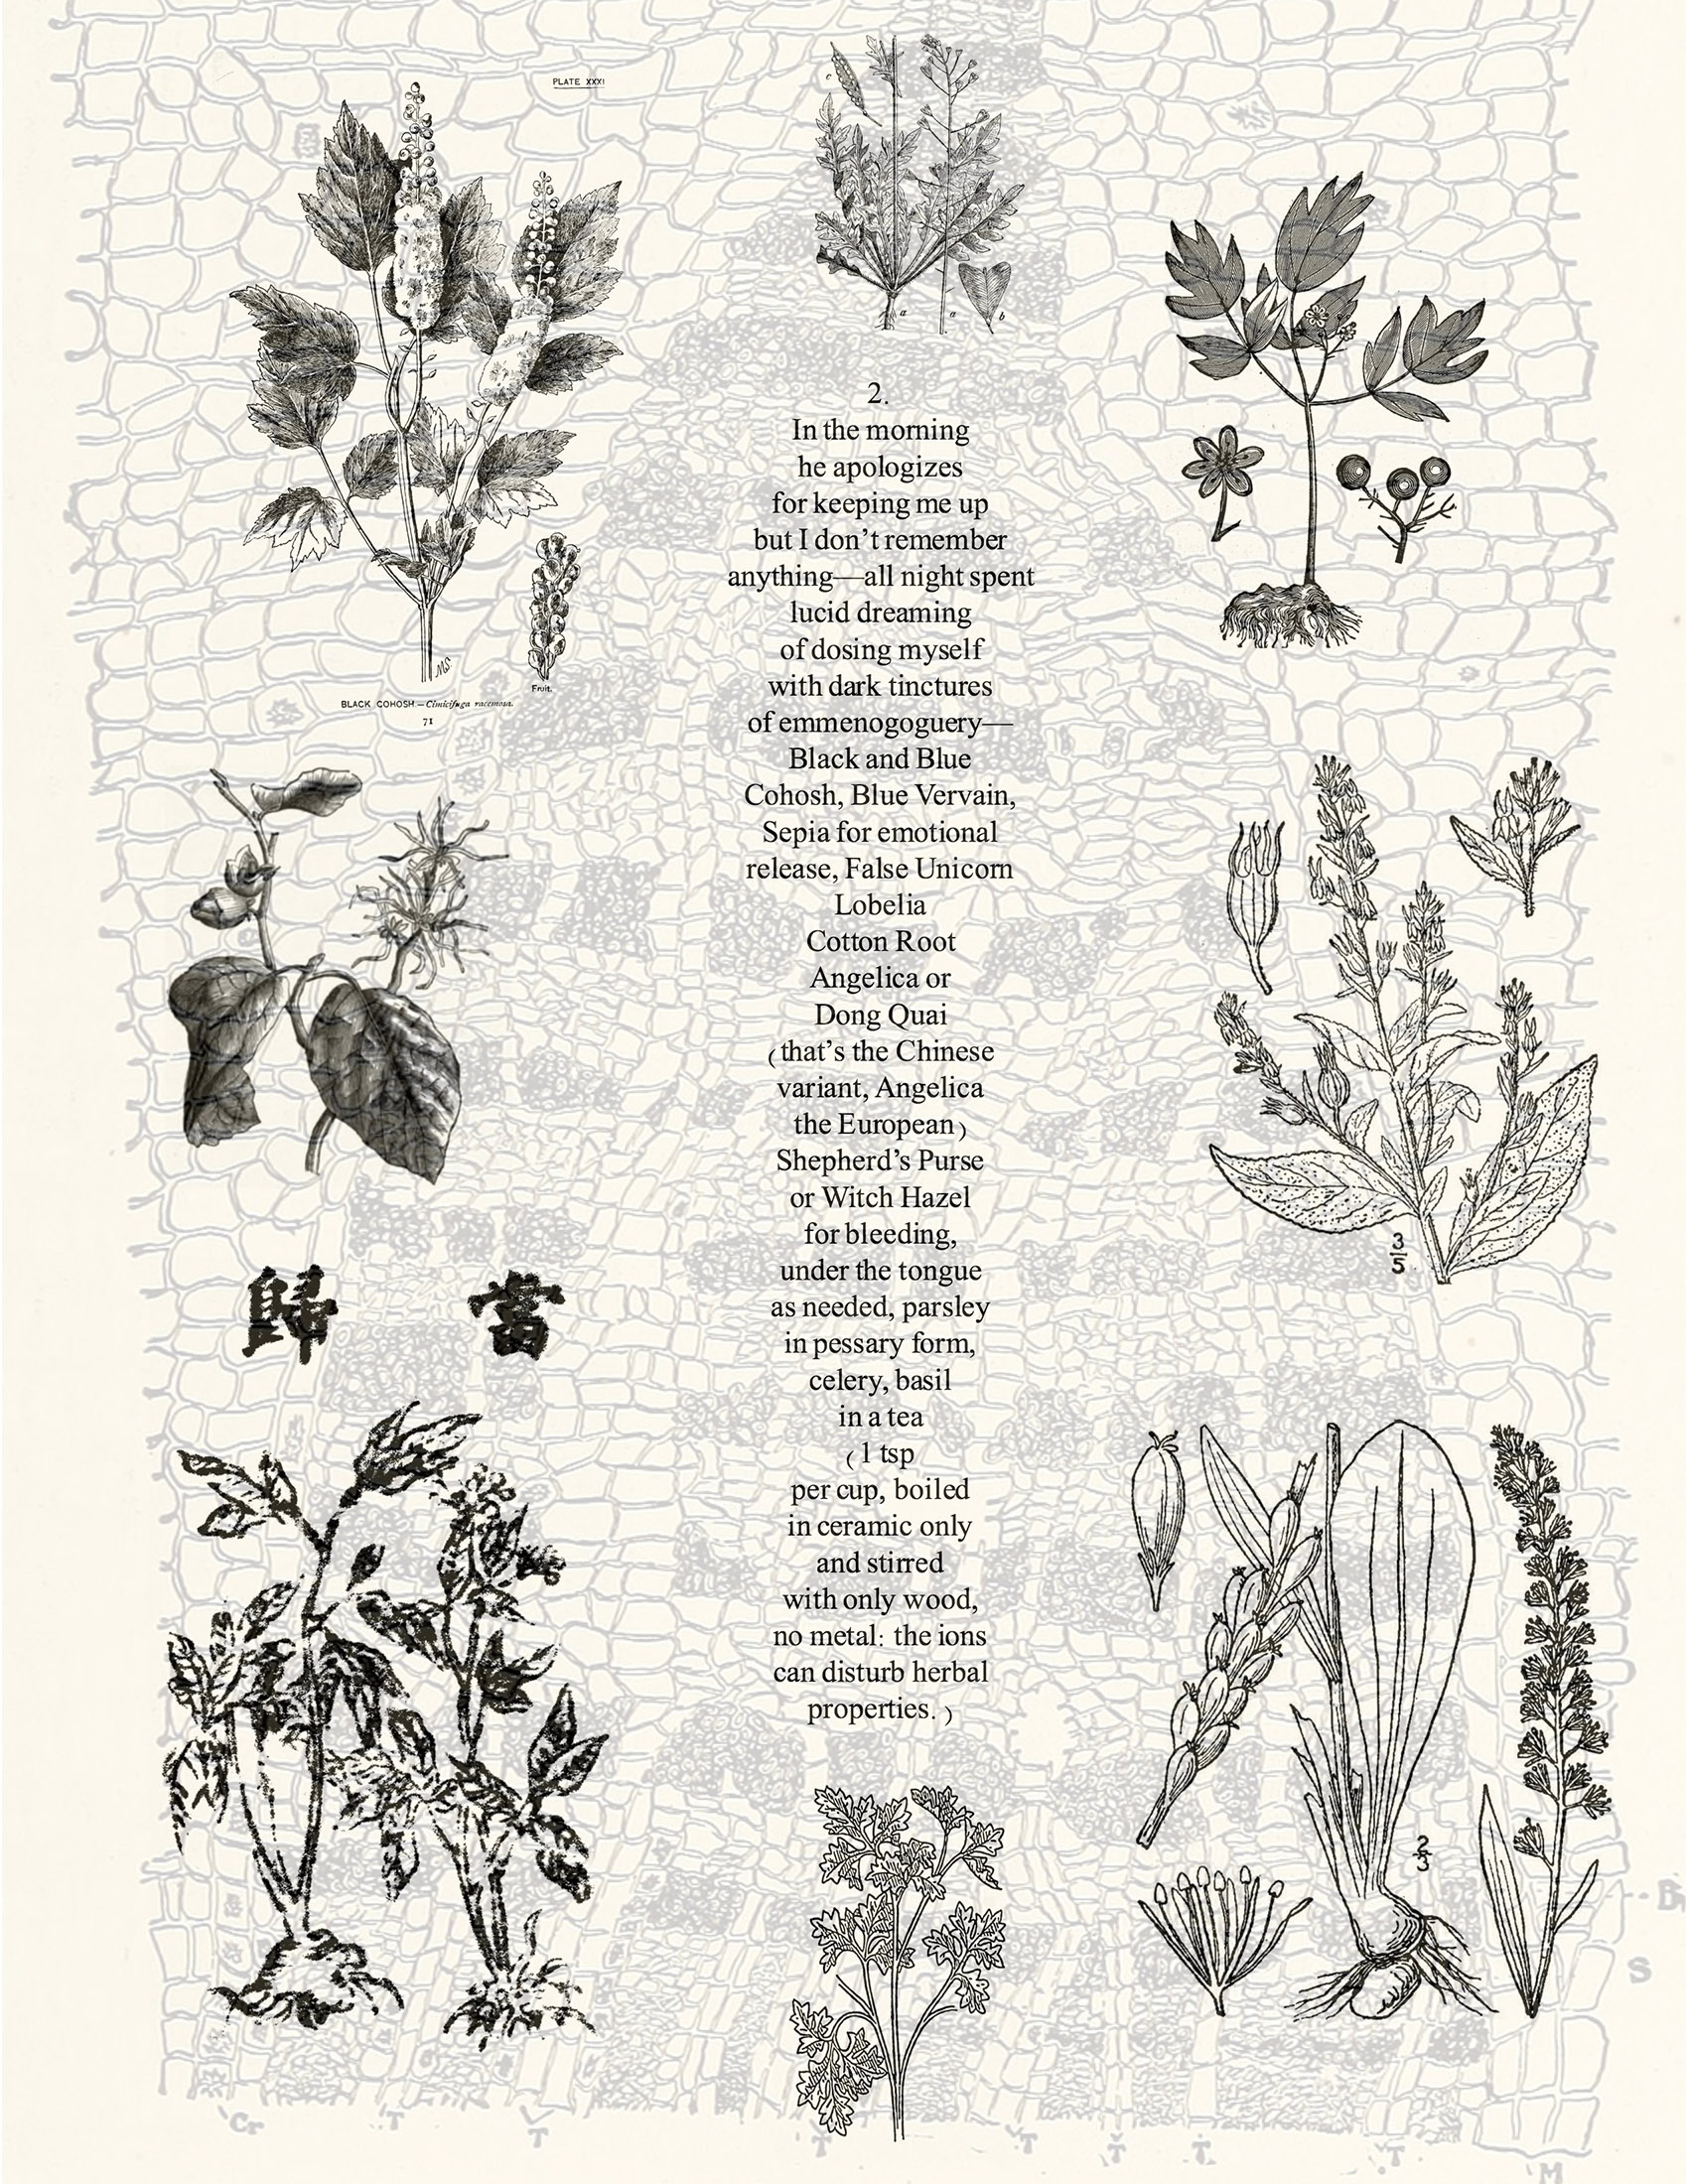 poem referencing herbal remedies superimposed over botanical illustrations of herbs